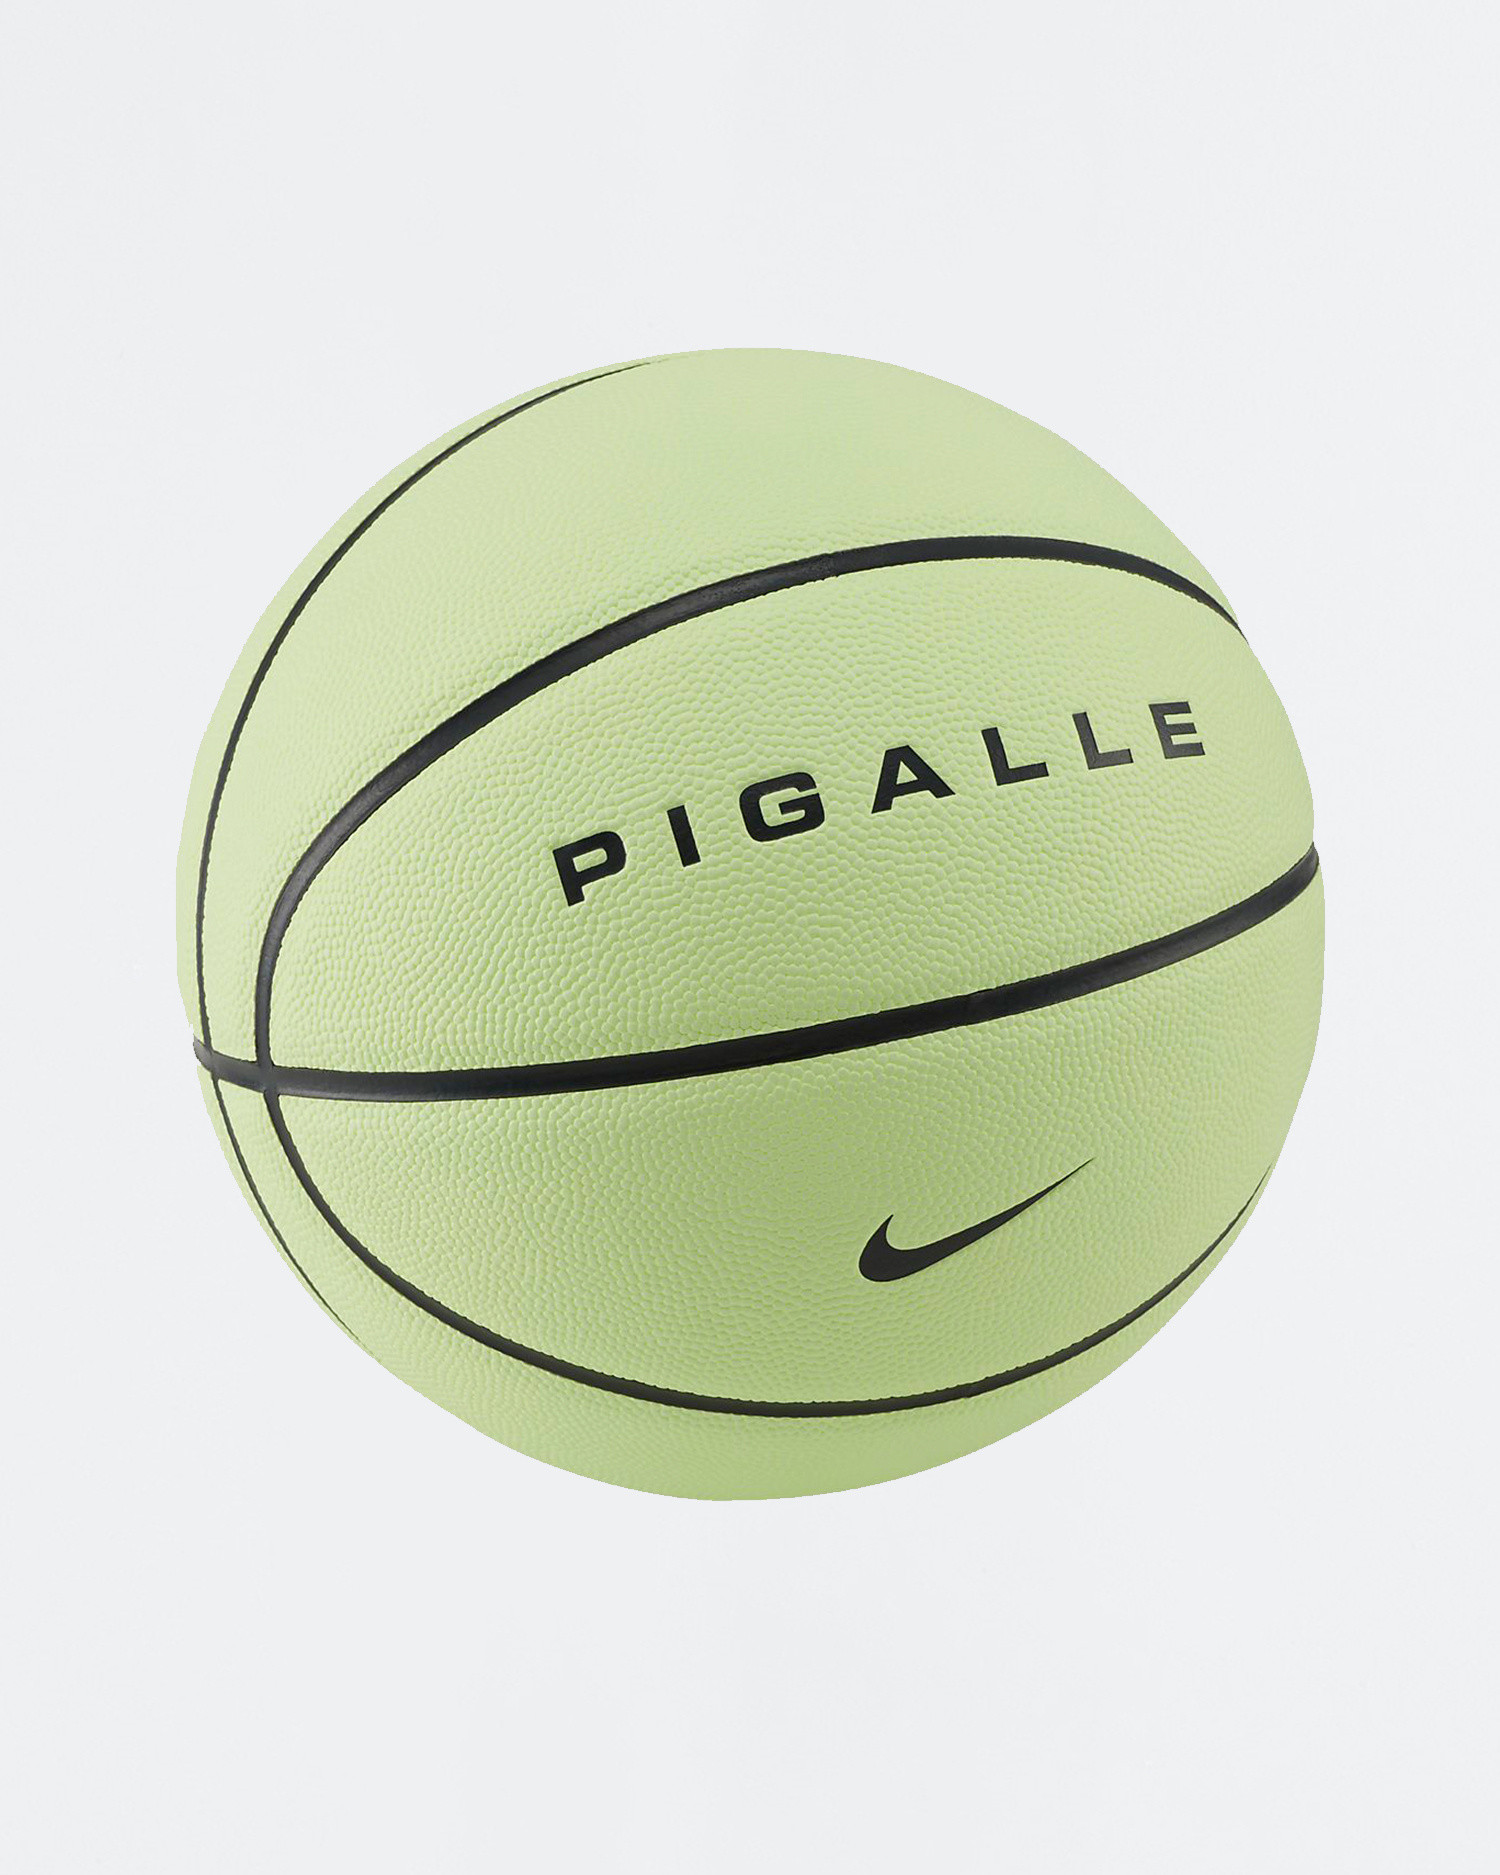 Nike x Pigalle basketball Barely Volt/Anthracite